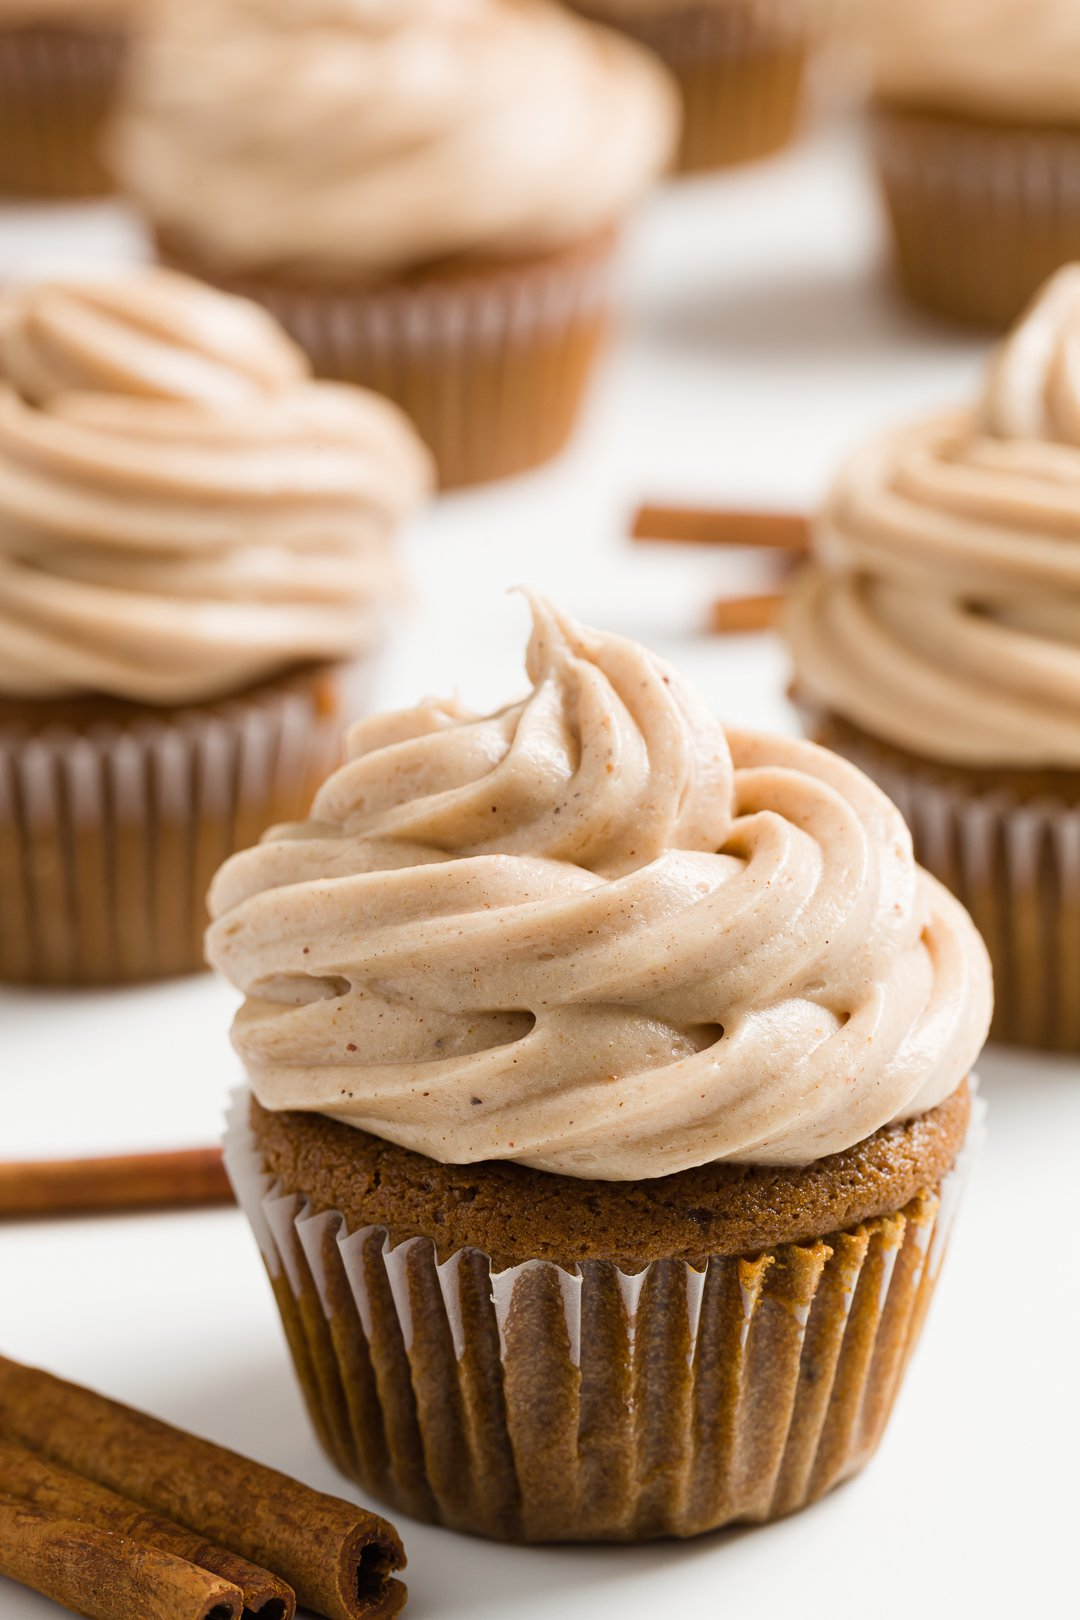 cinnamon cream cheese frosting on a cupcake